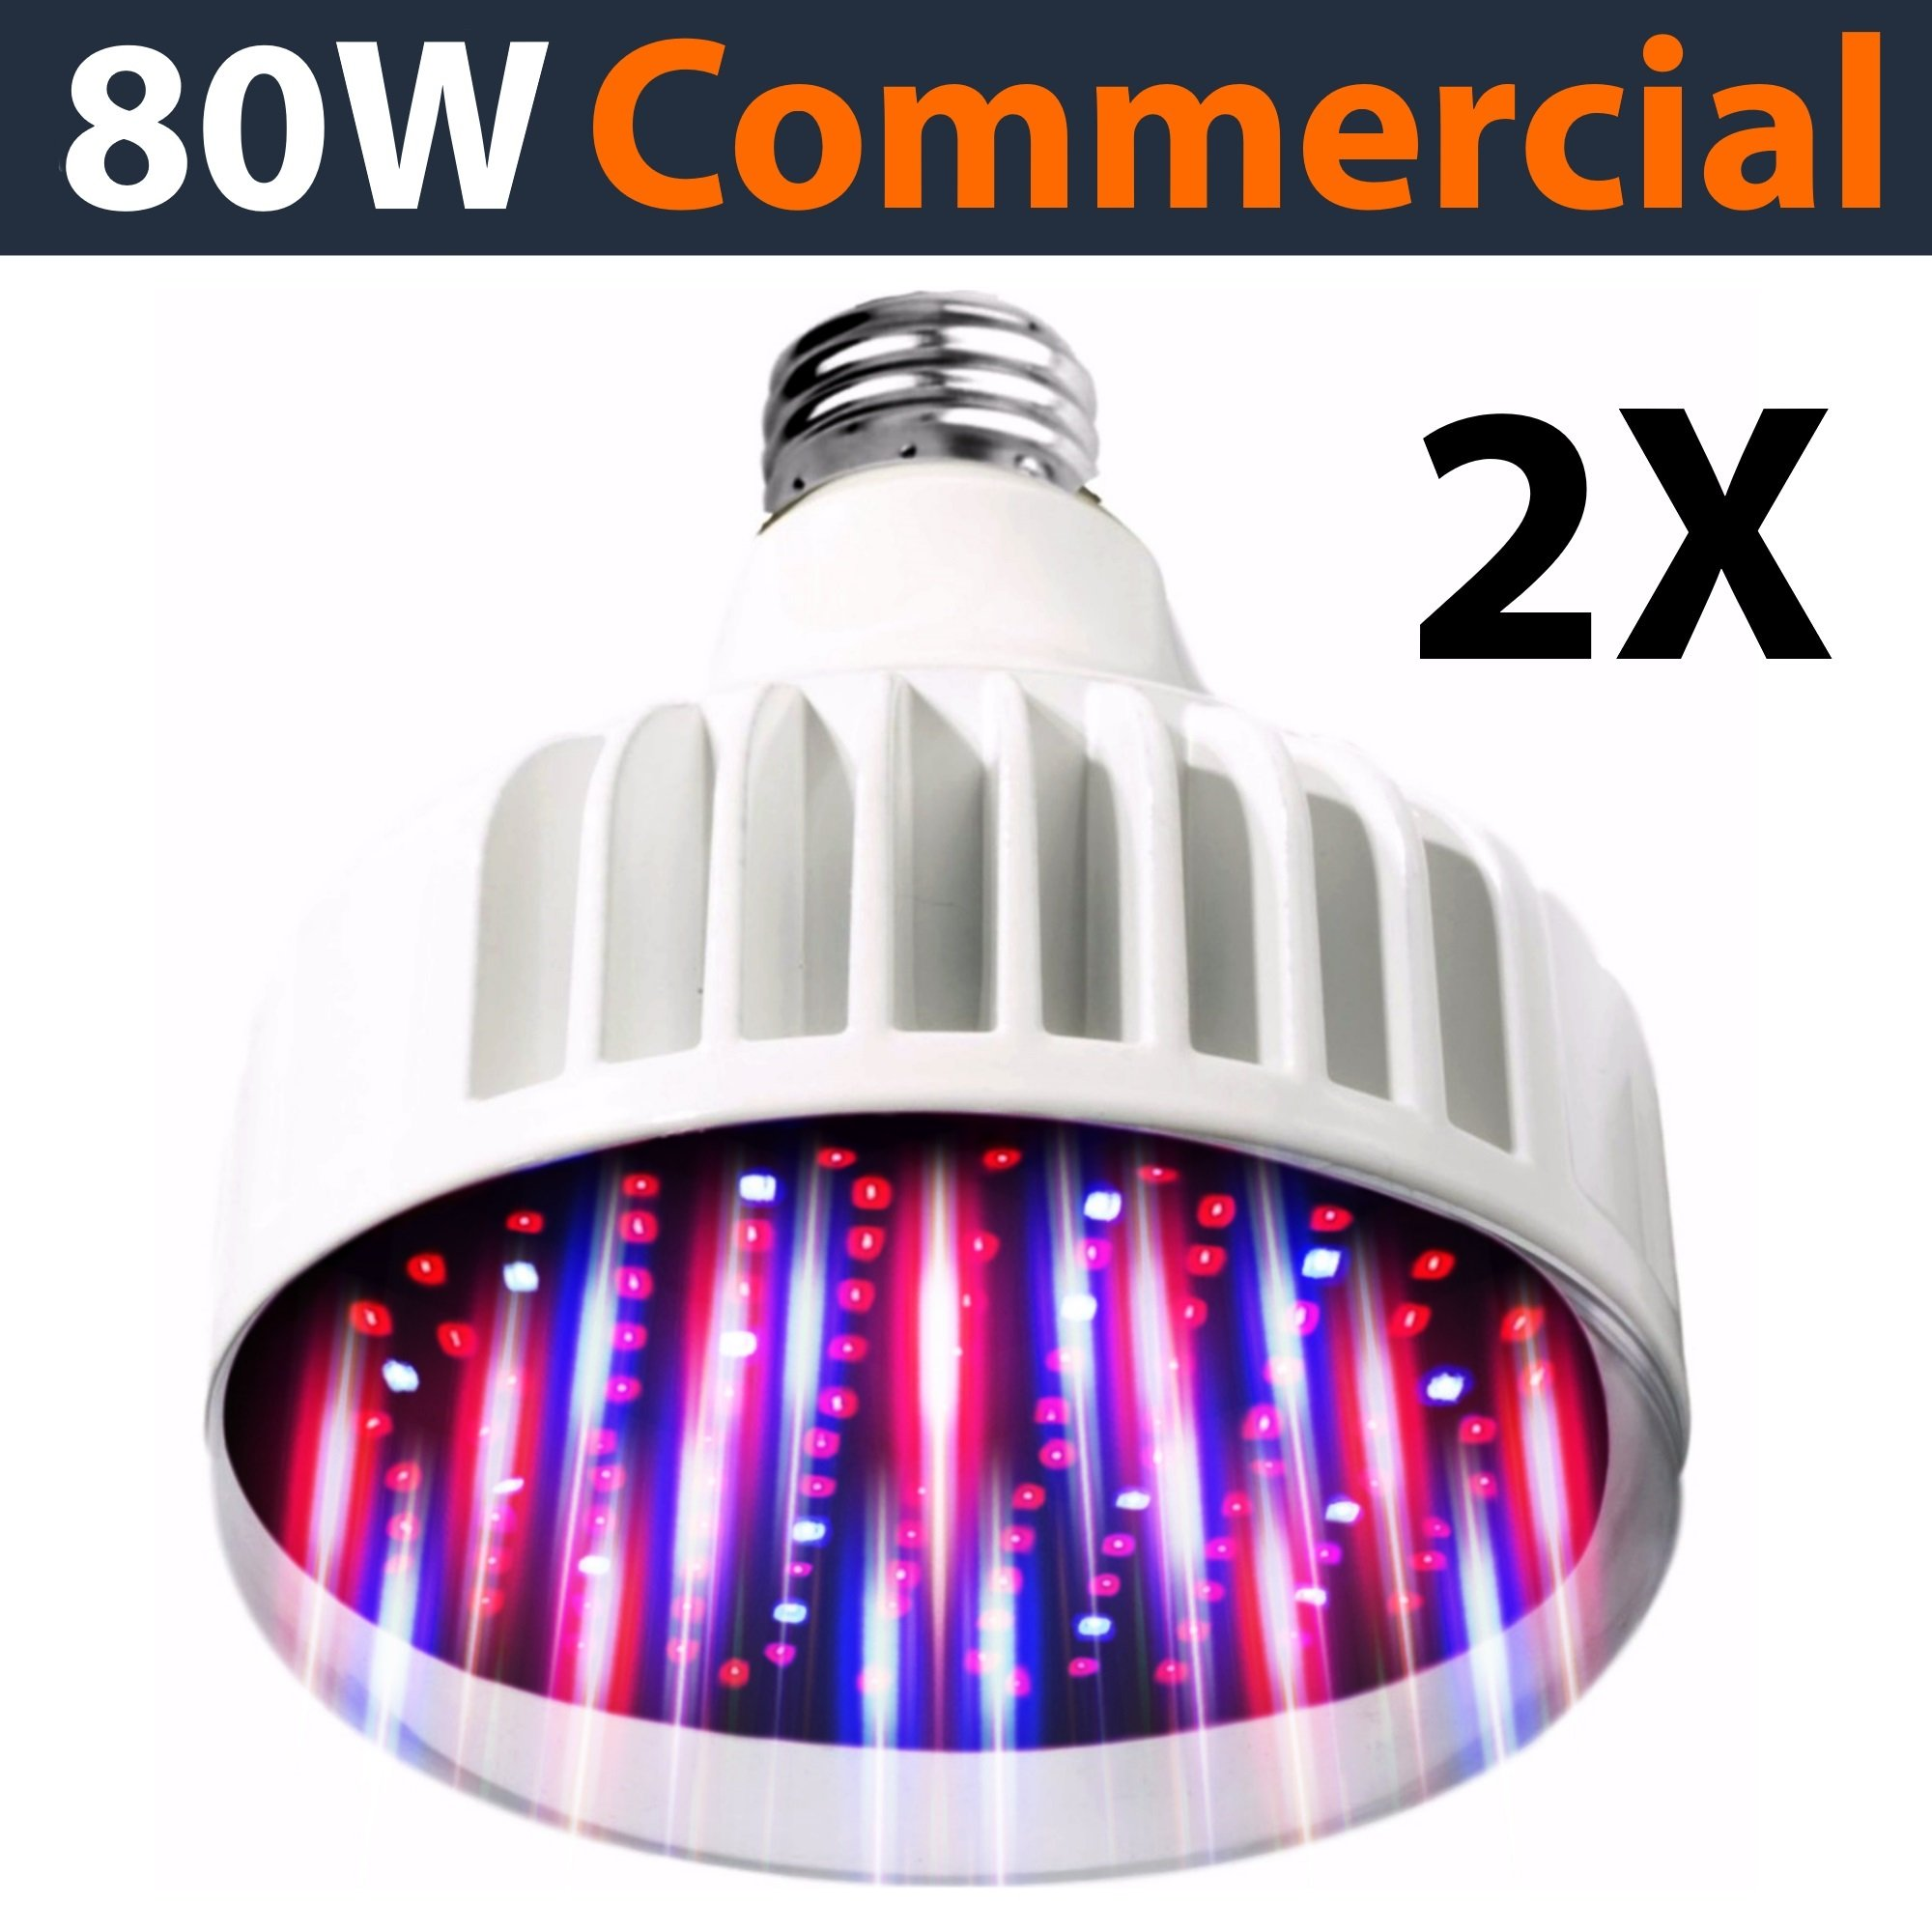 Lighting Labs Pro Grow Series - LED Grow Bulb - 2 PK, 80 Watt Output from two 40 Watt bulbs, Full Spectrum, Red and Blue tuned for maximum flowering, hydroponic indoor, E27, 120-277V, Clear Cover